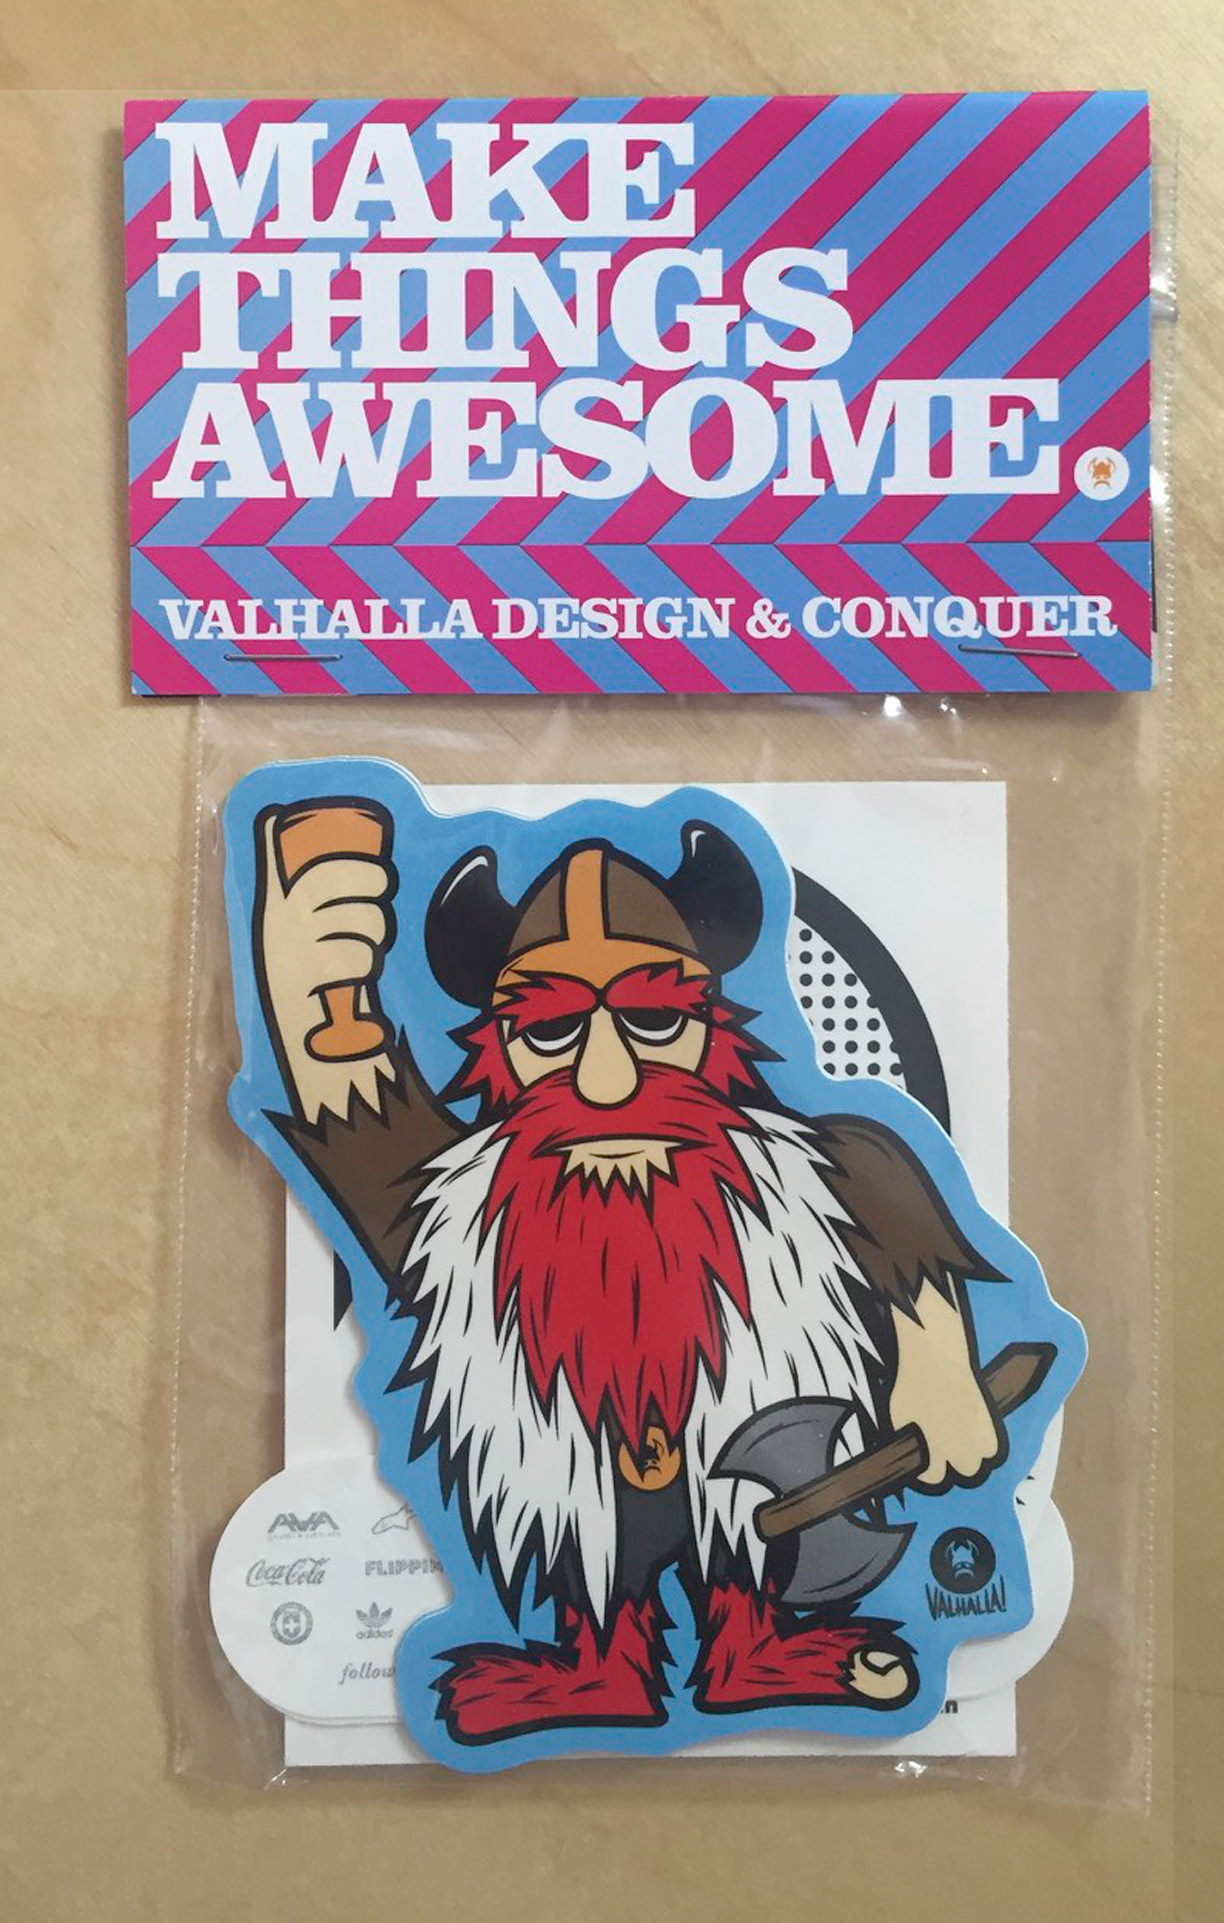 Valhalla Design & Conquer - Promotional Sticker Pack